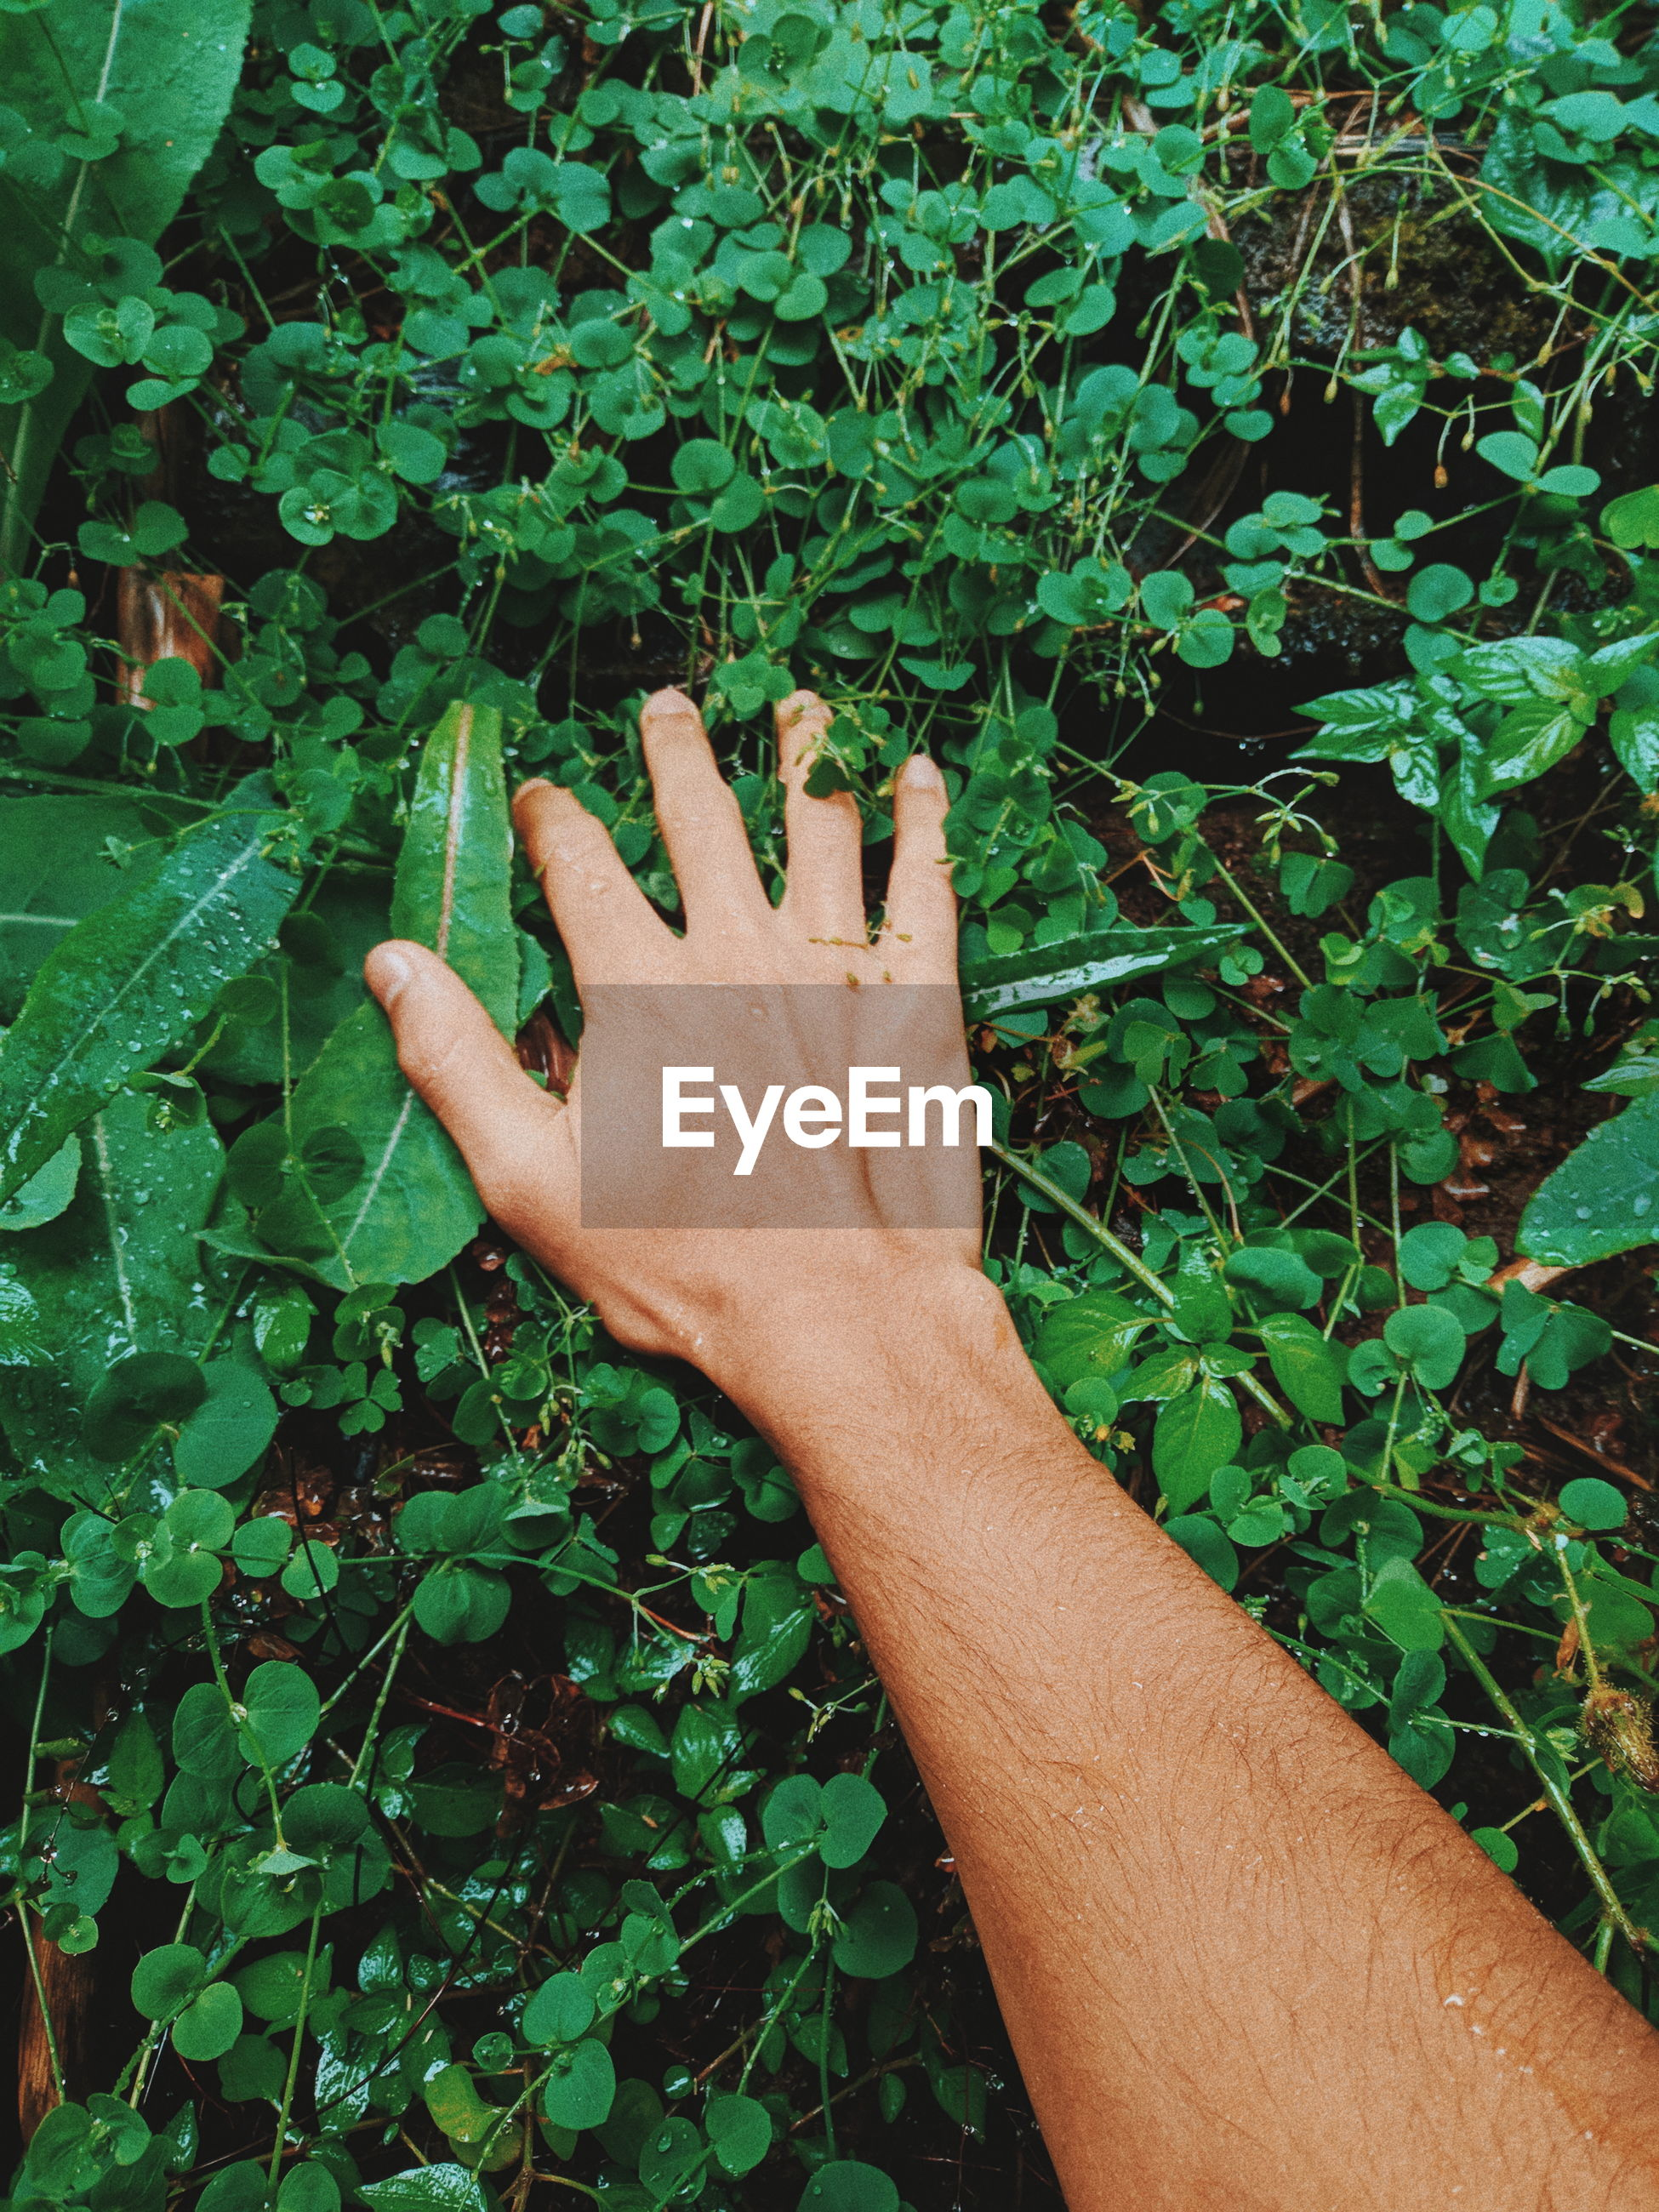 CROPPED IMAGE OF HAND TOUCHING PLANT